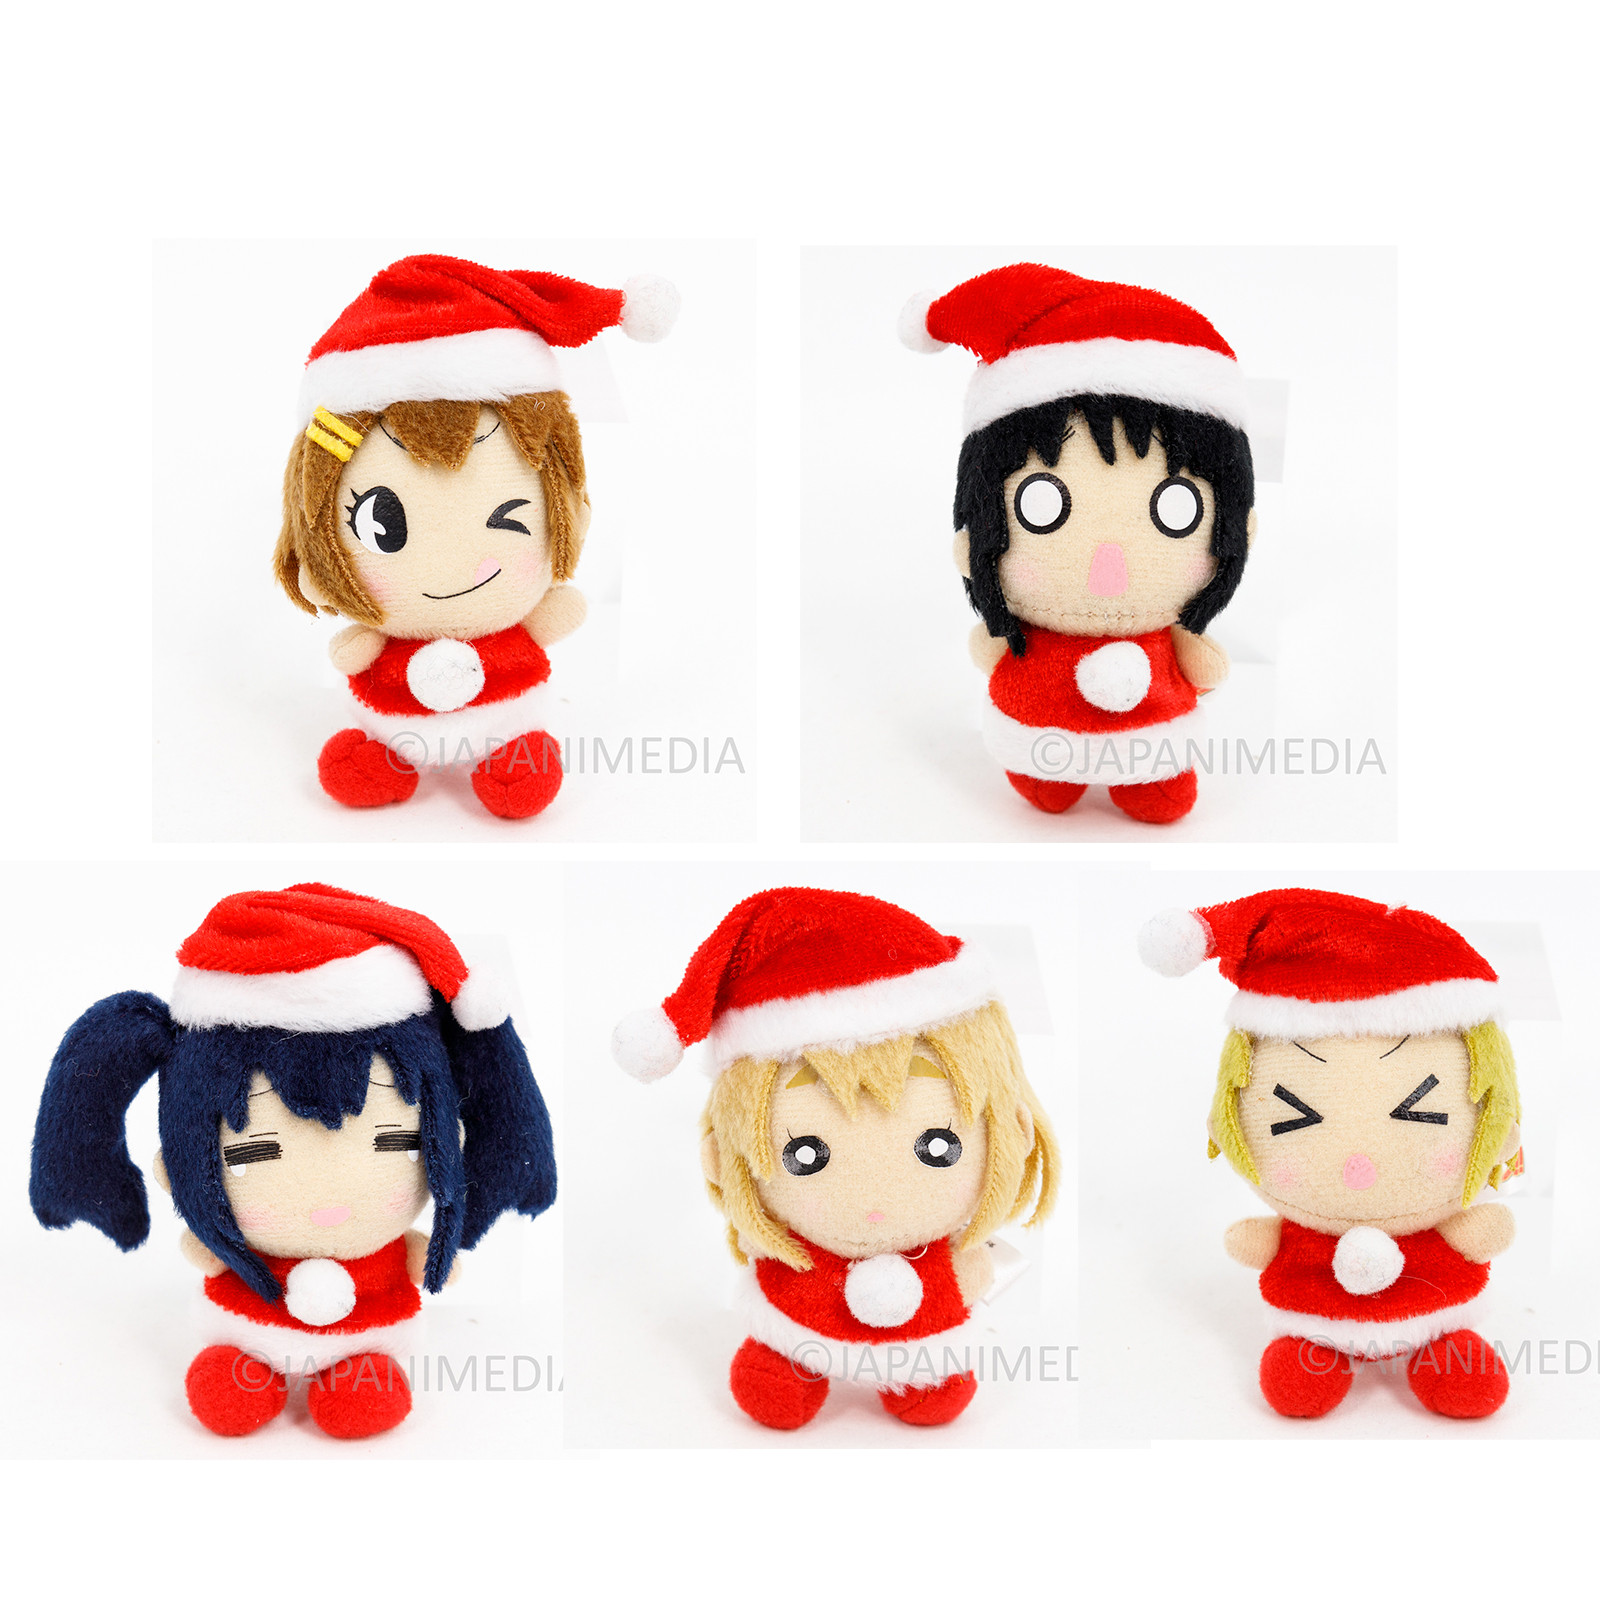 K-ON! Mini Plush Doll Christmas ver. 5pc Set Yui Mio Ritus Tsumugi Azusa NO BOX